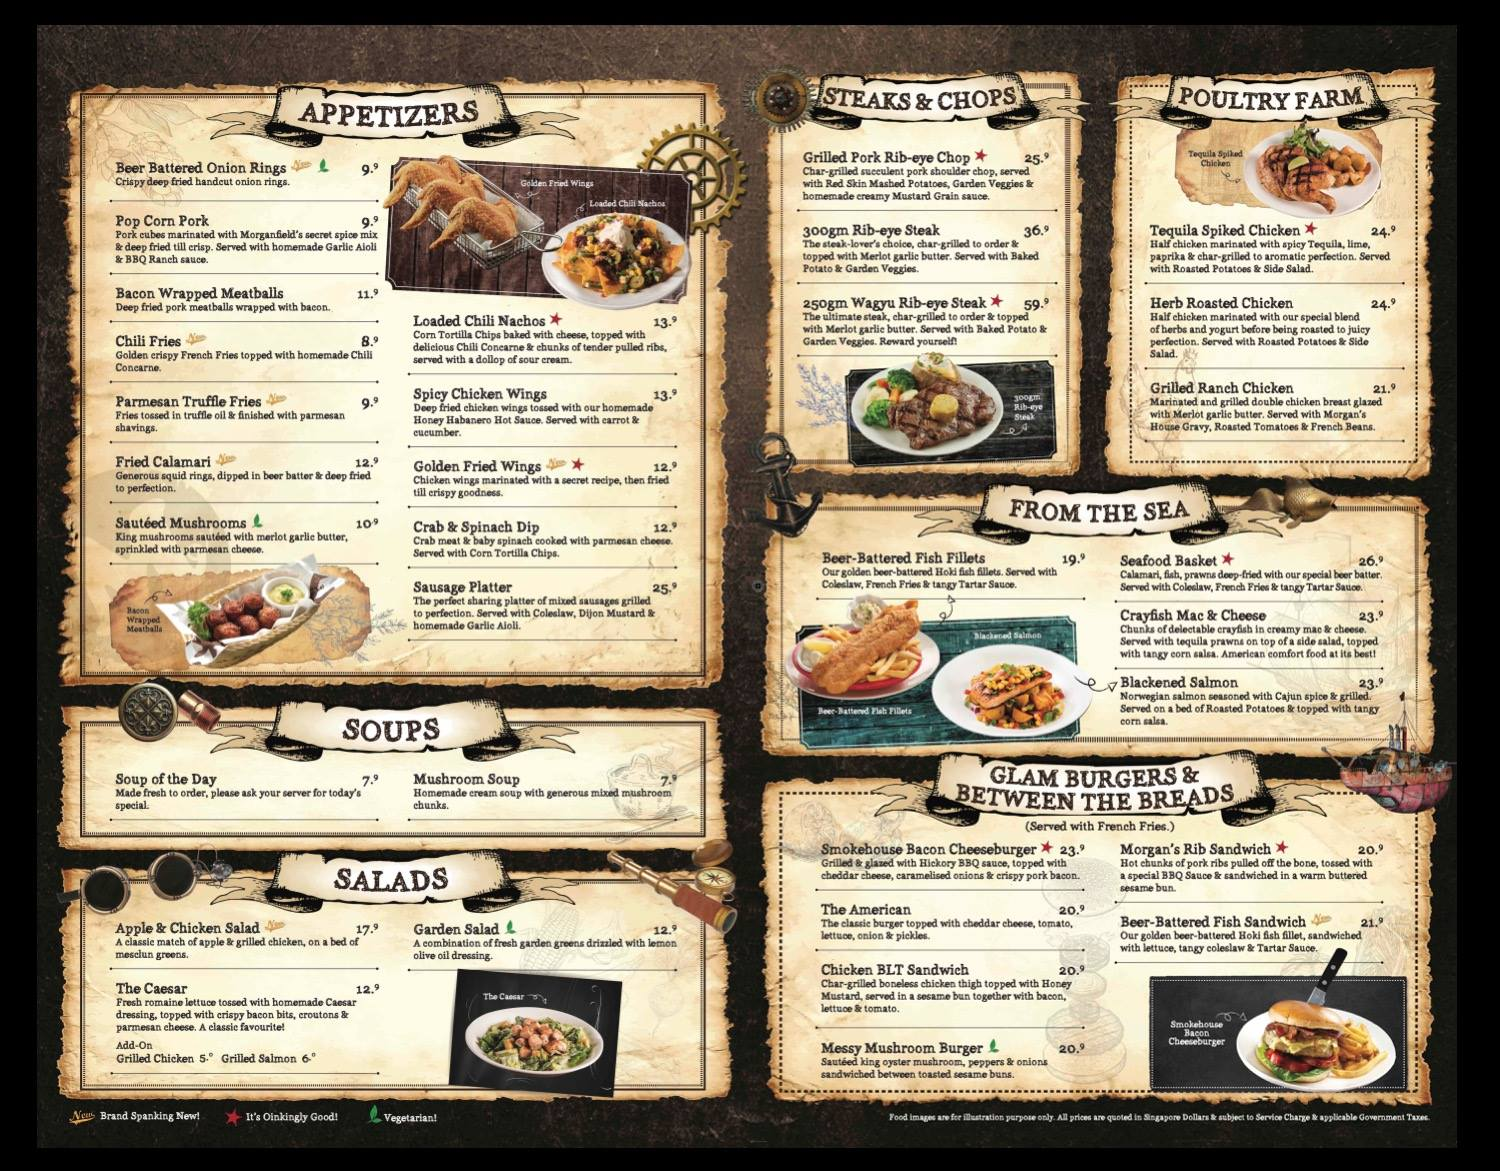 Morganfield's - Appetizers & Mains Menu - TREAT